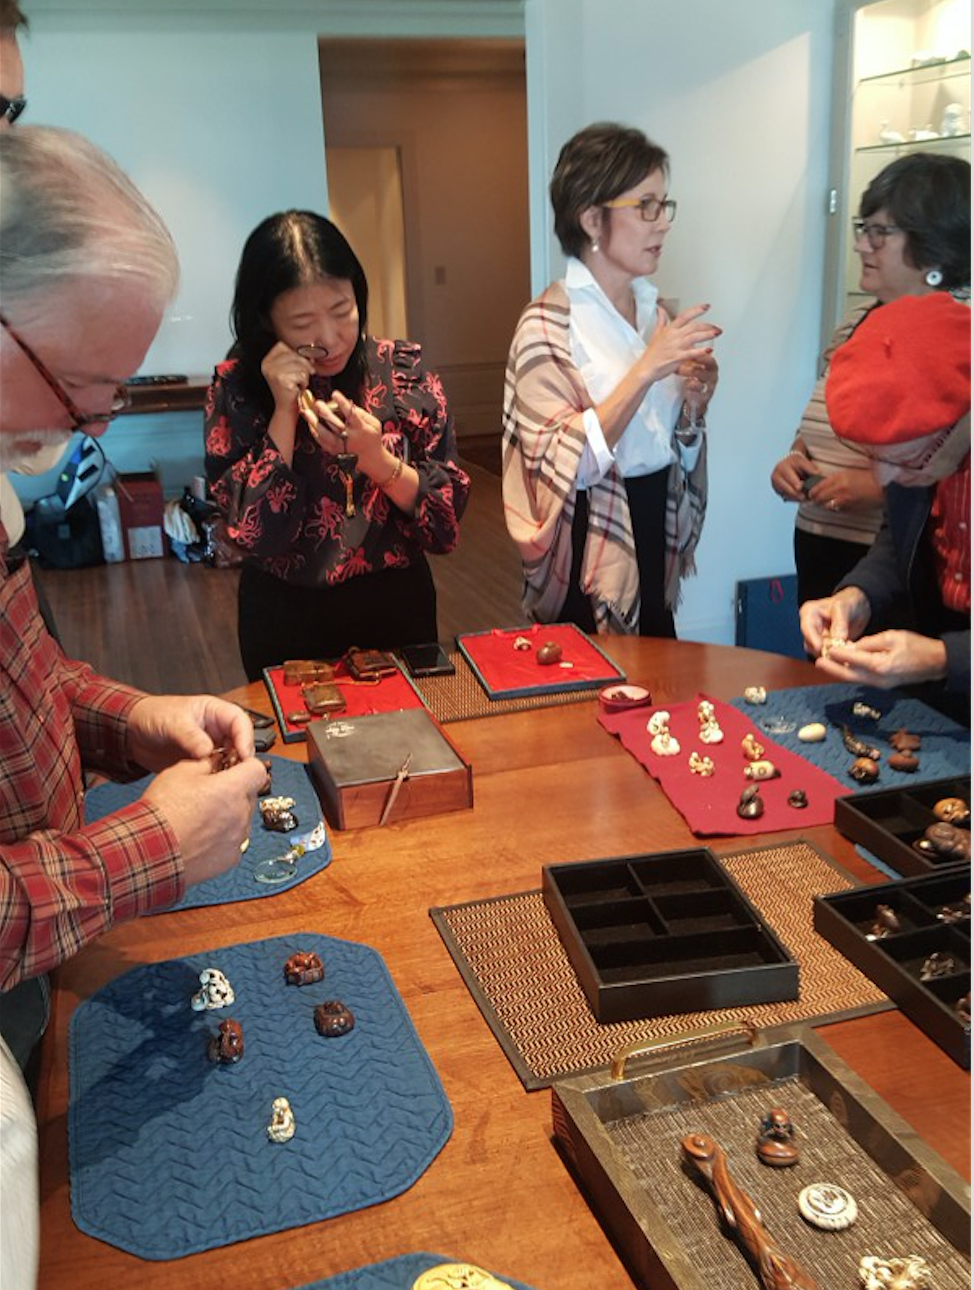 Screen Shot 2017-10-29 at 18.36.38.png